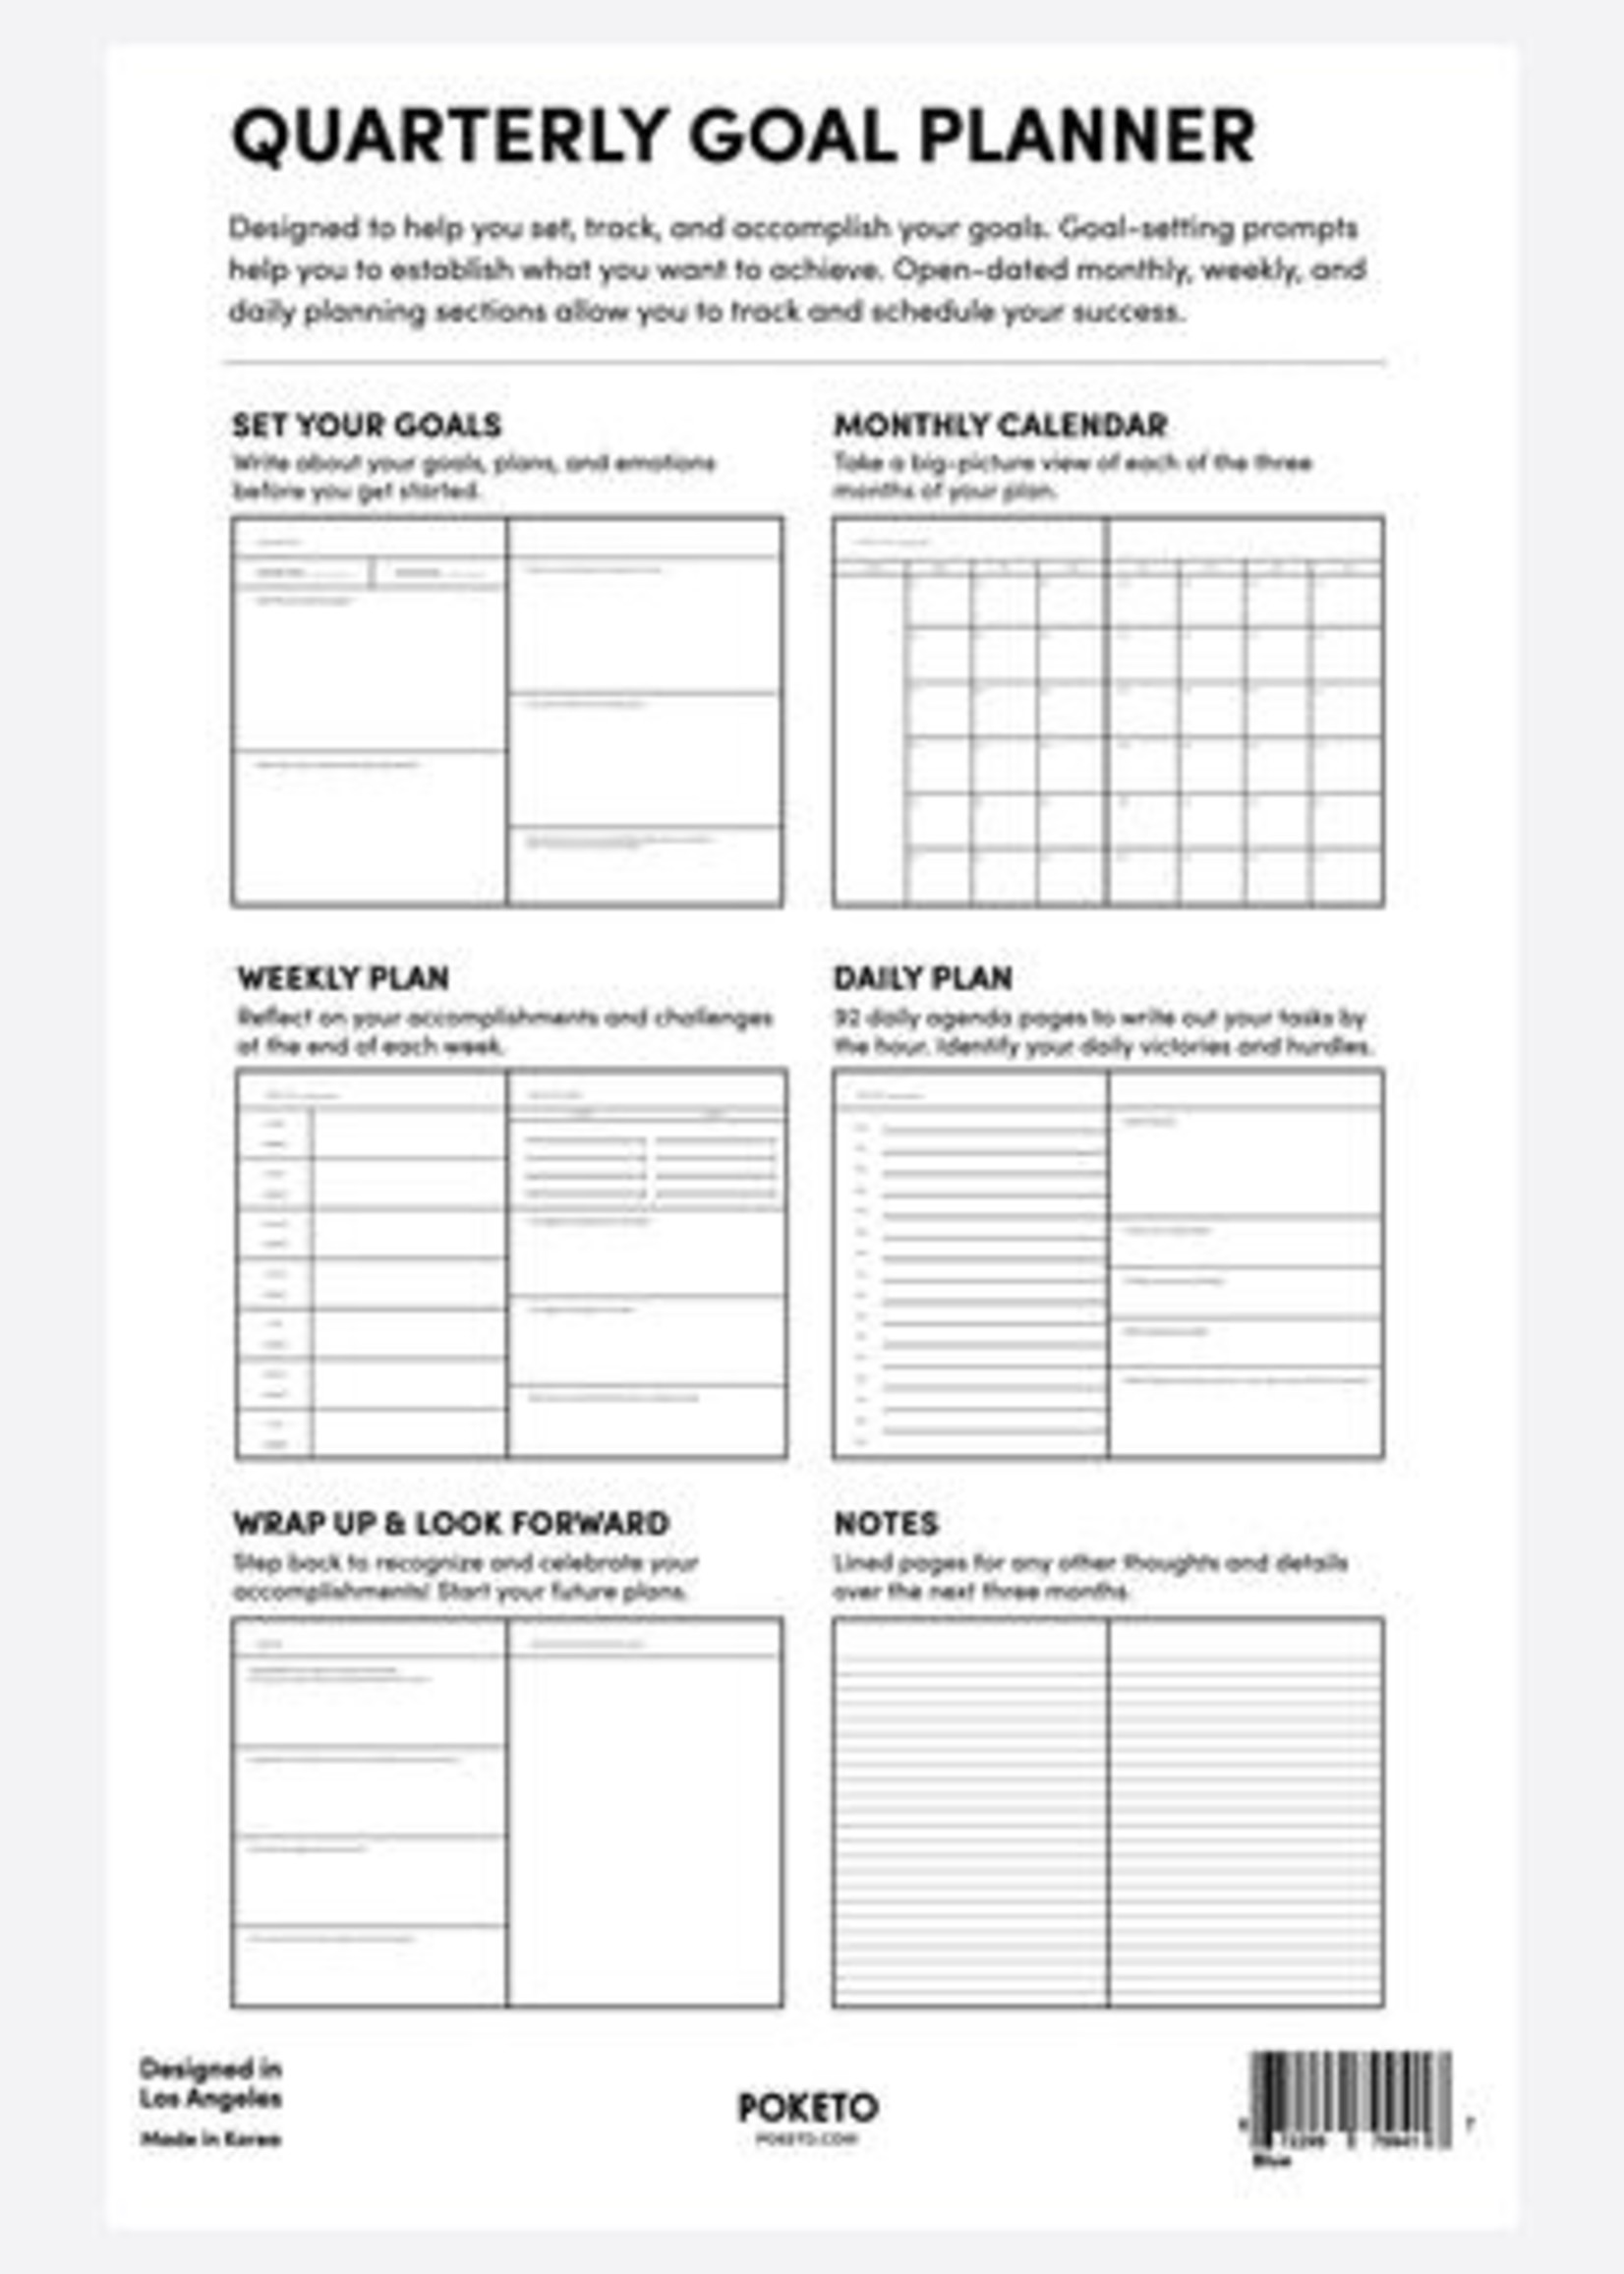 Poketo Quarterly Goal Planner - Green